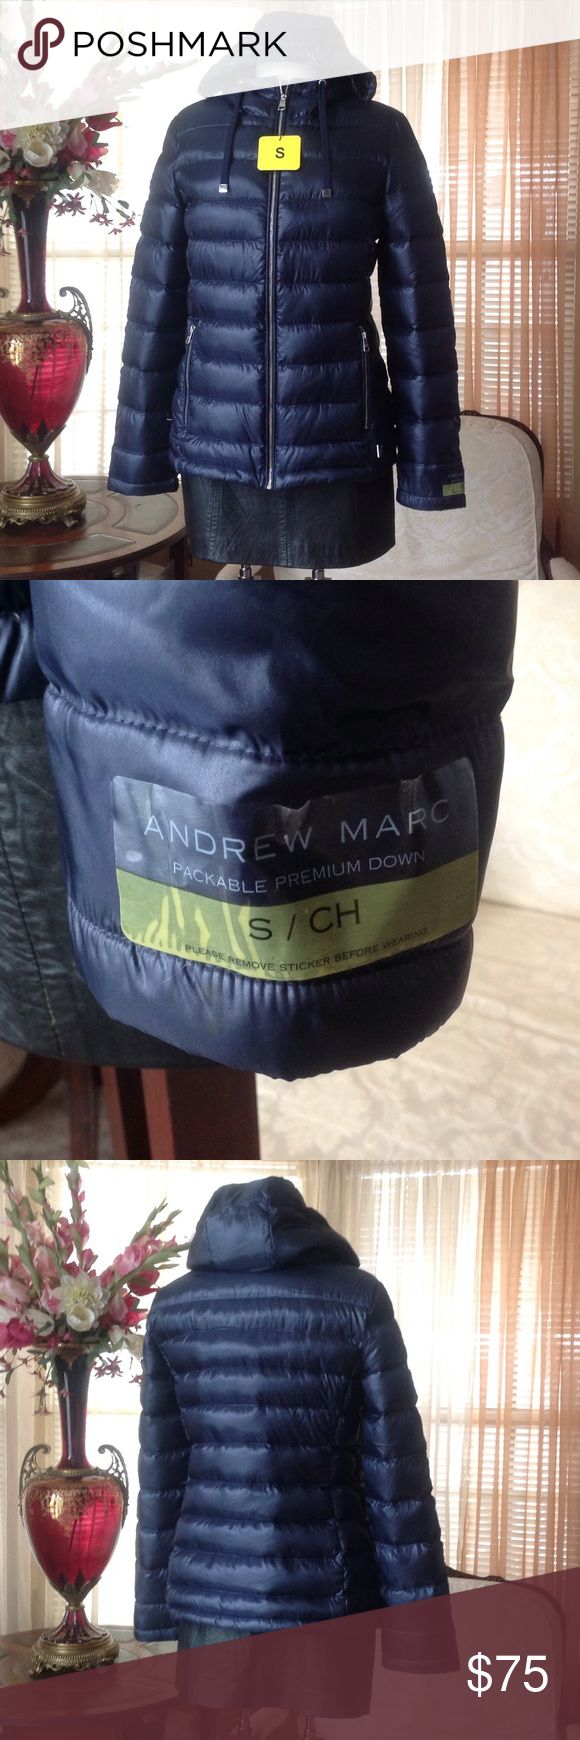 Andrew Marc blue down jacket NEW! New with tag attached.                                         e Andrew Marc Jackets & Coats